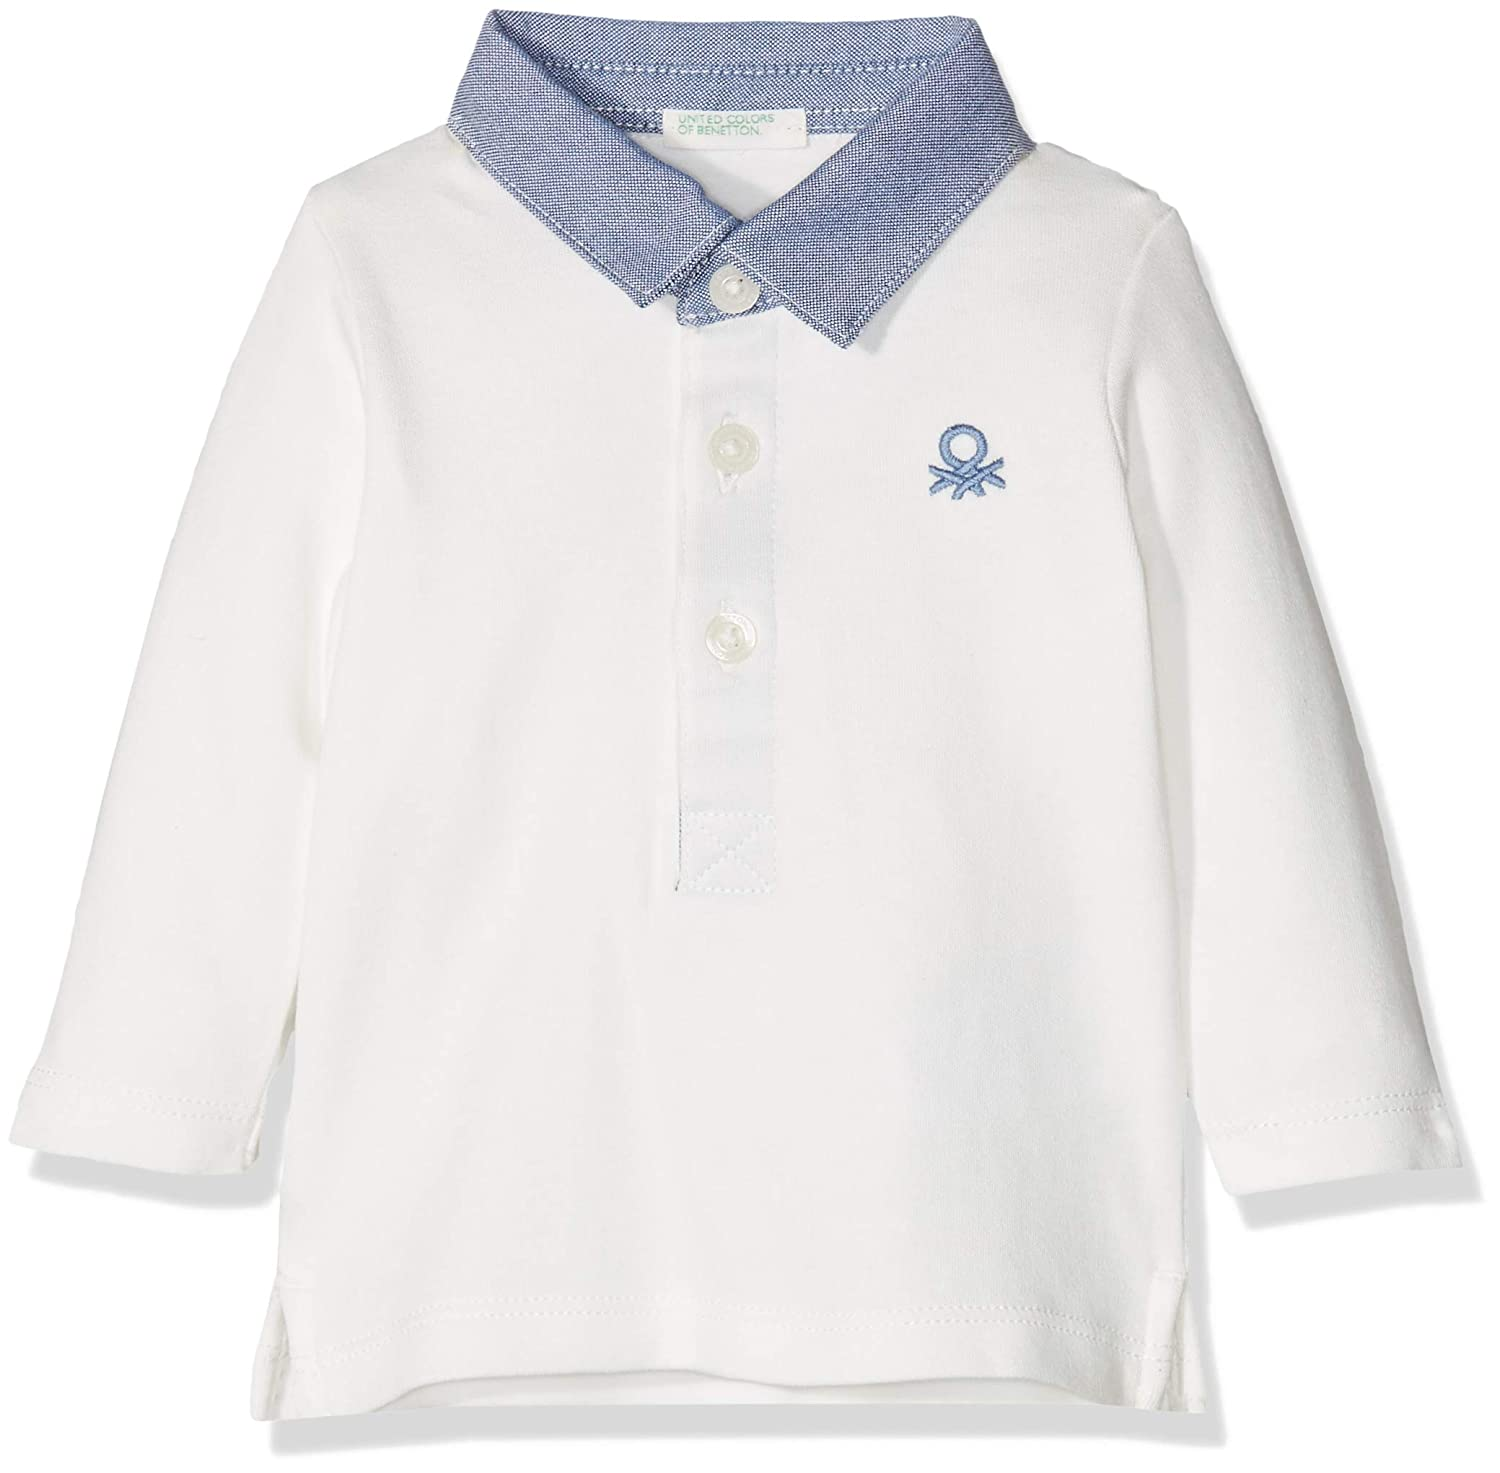 United Colors of Benetton Baby Boys' L/S Polo Shirt 3793MM1WL